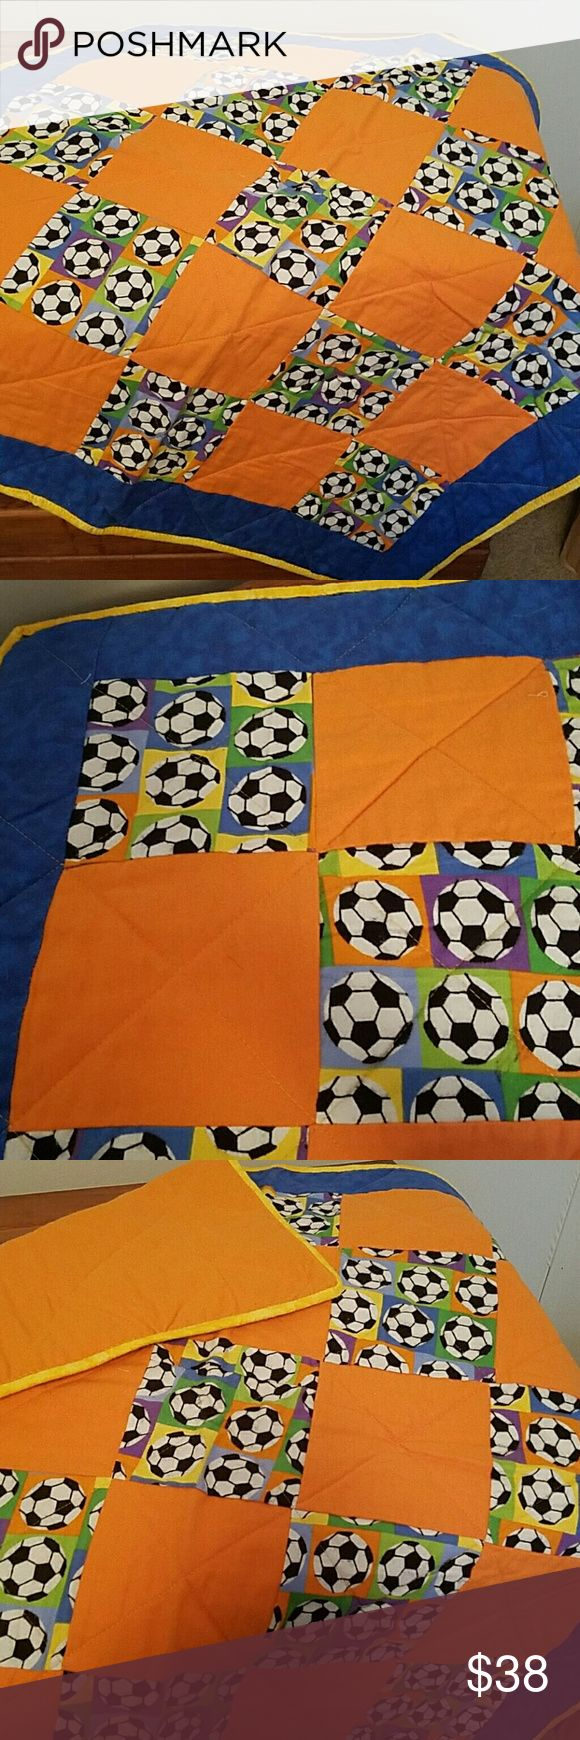 """Soccer ball baby blanket Handmade soccer ball baby blanket/play pad. Flannel material.  Size: 31""""x64"""" Accessories"""